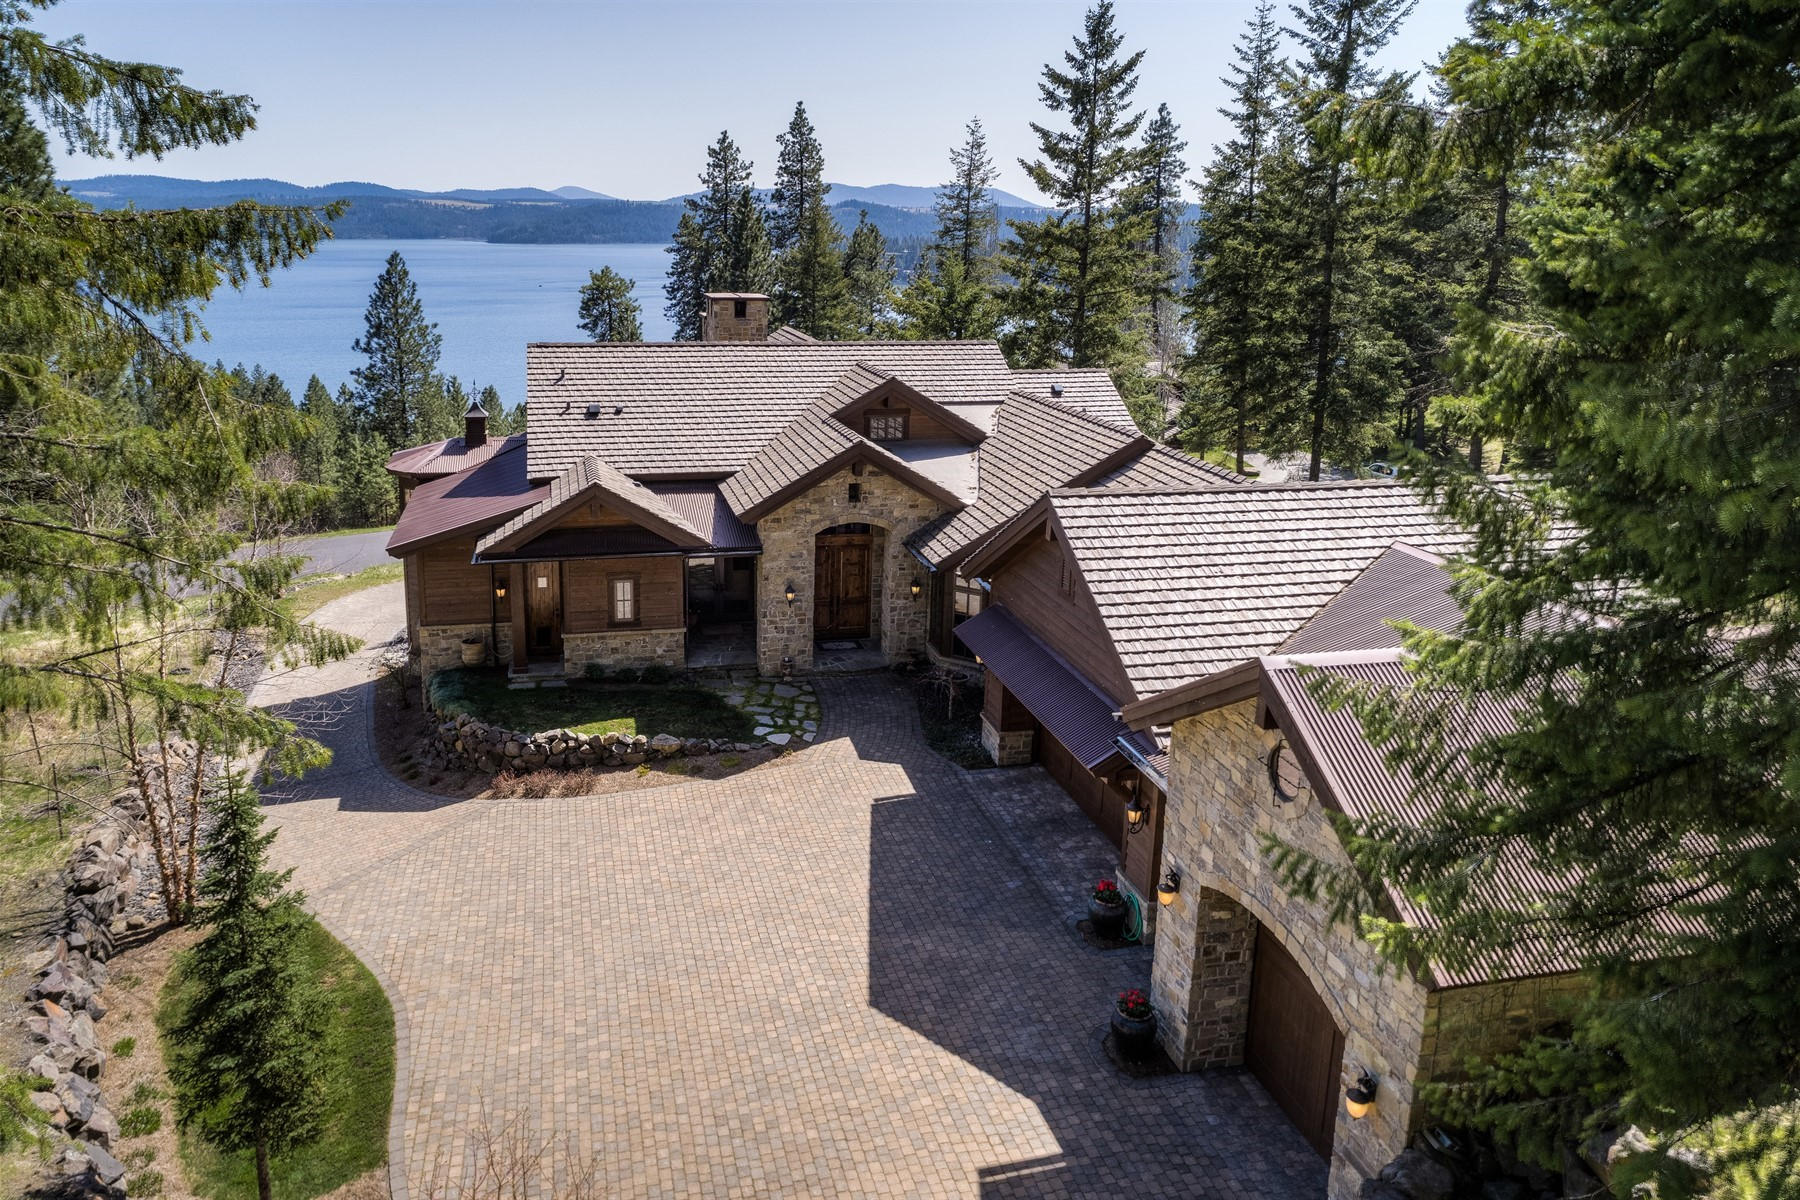 Single Family Homes for Active at 6349 W Onyx Cir Coeur D Alene, Idaho 83814 United States